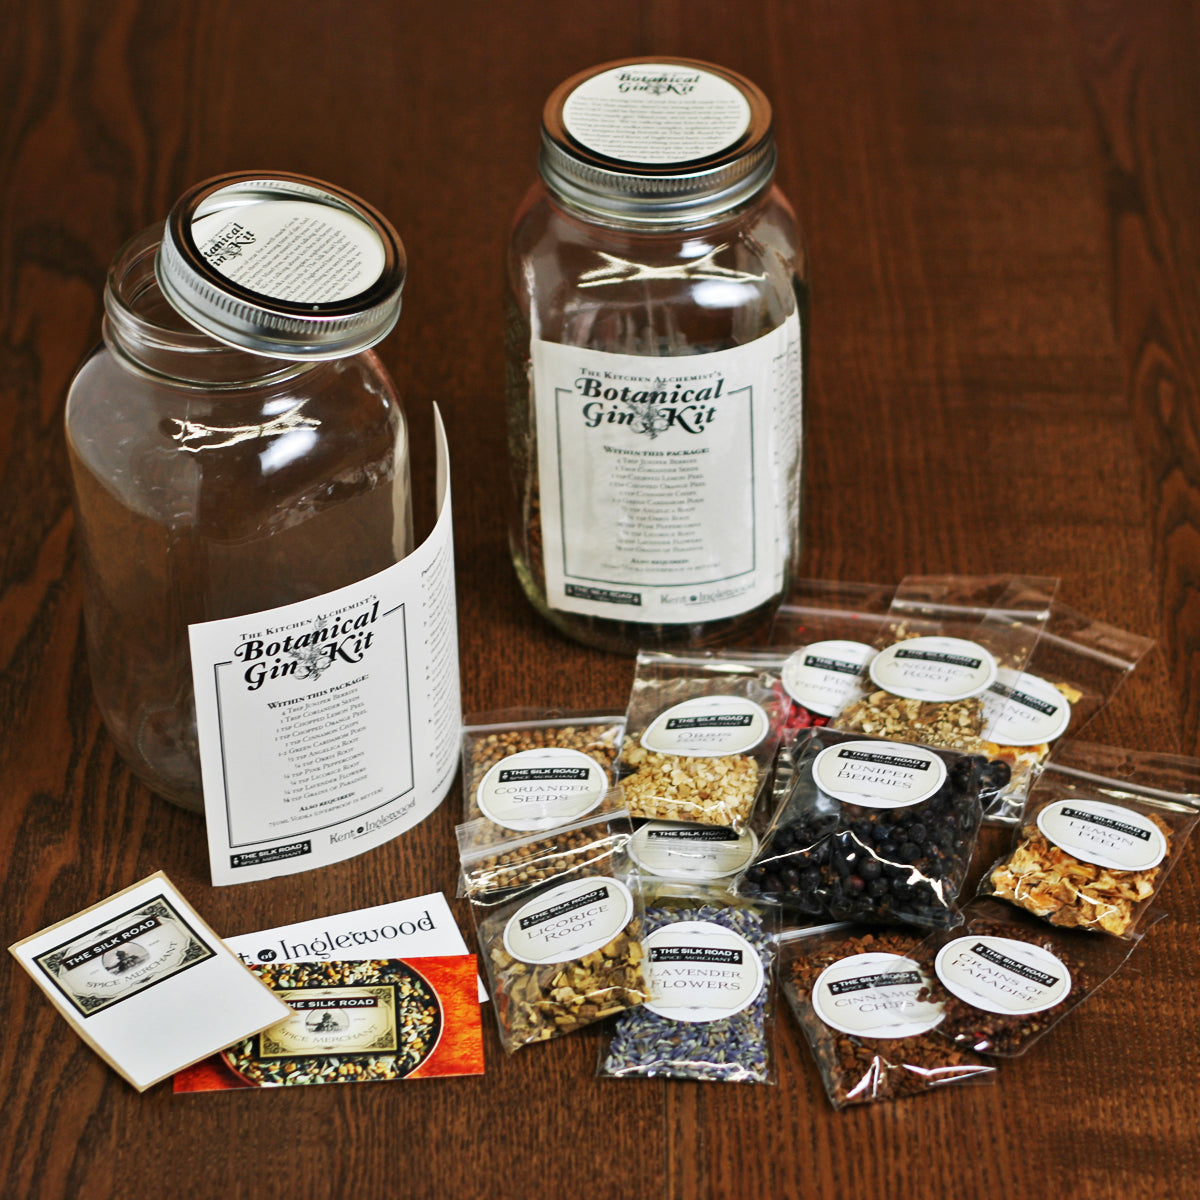 Botanical Gin Kit